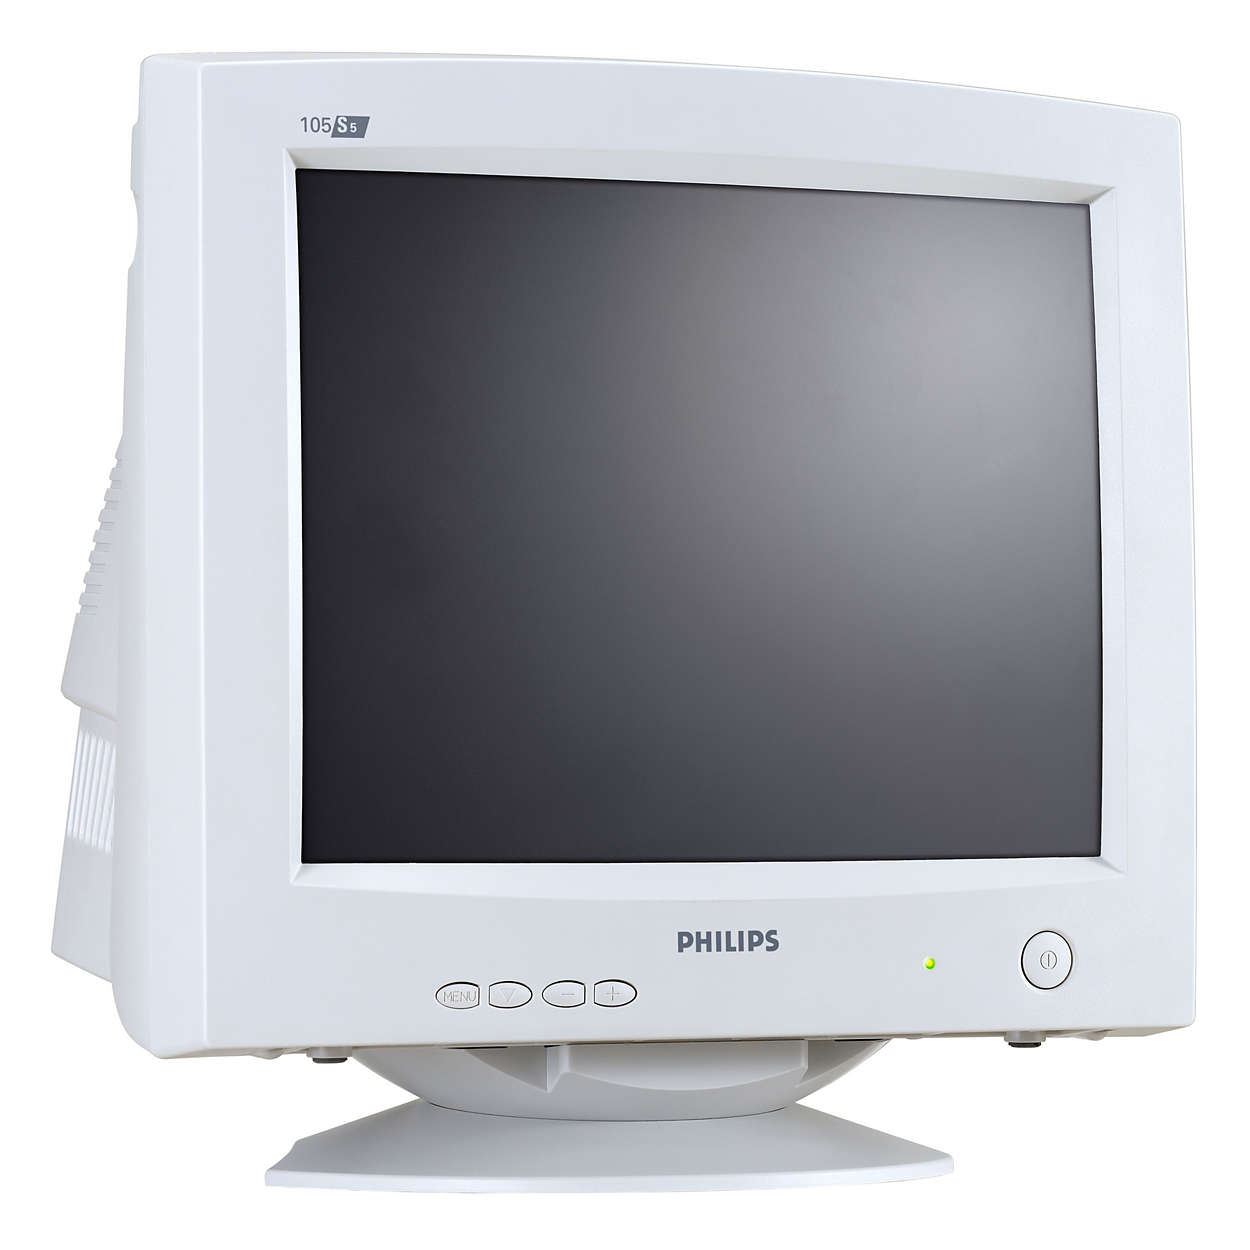 outstanding CRT value and quality